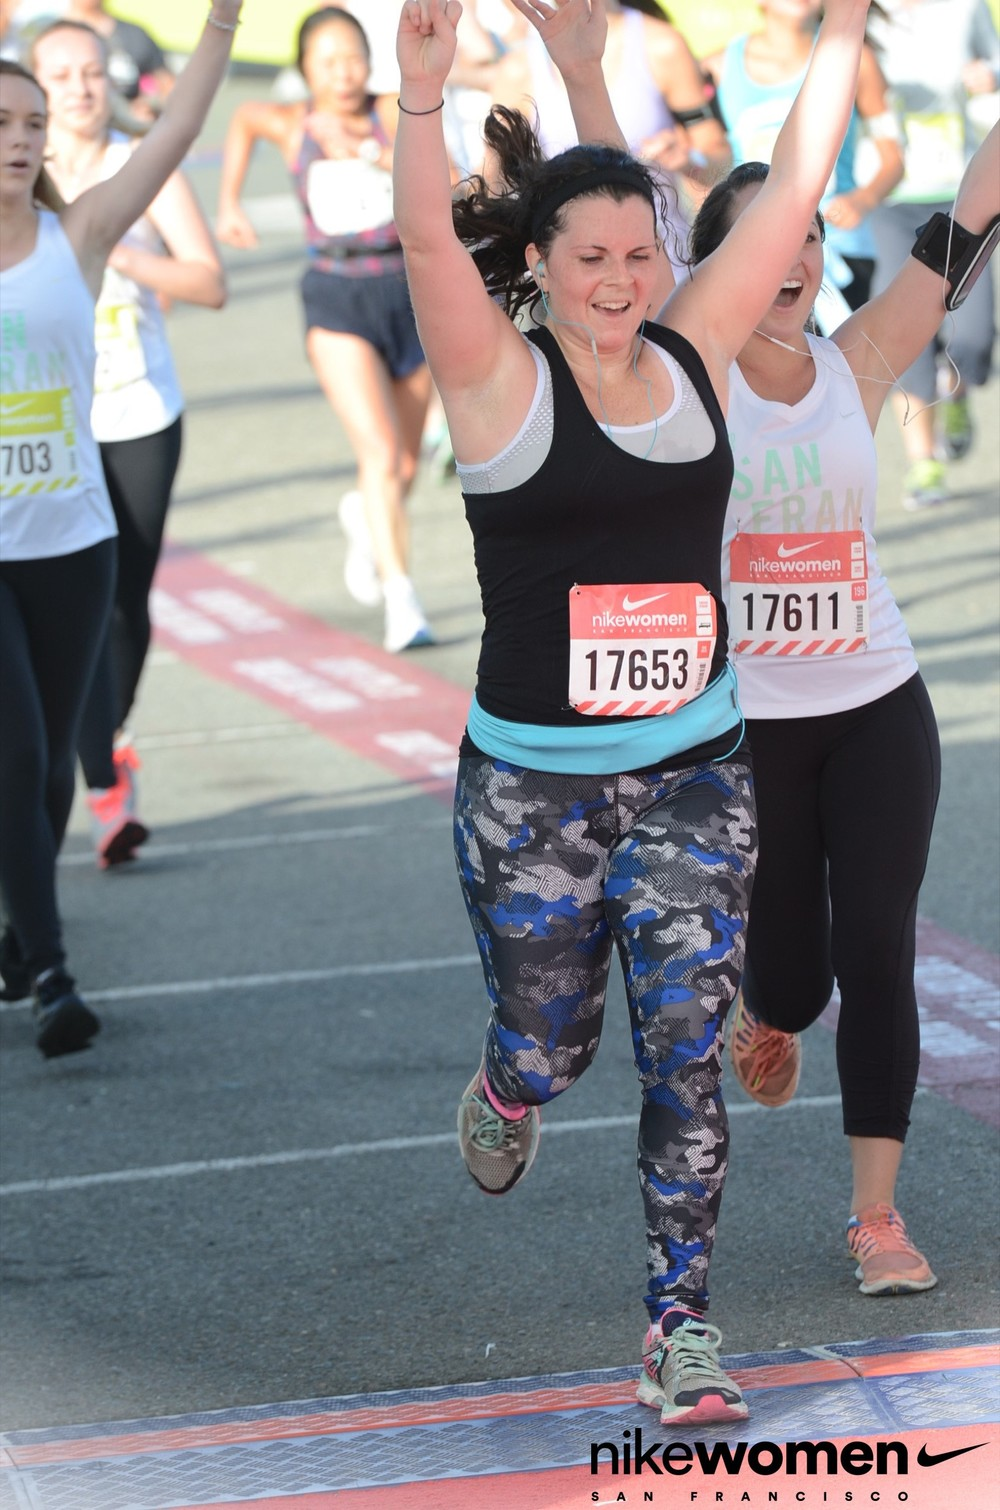 Crossing the finish line - and it felt so good!